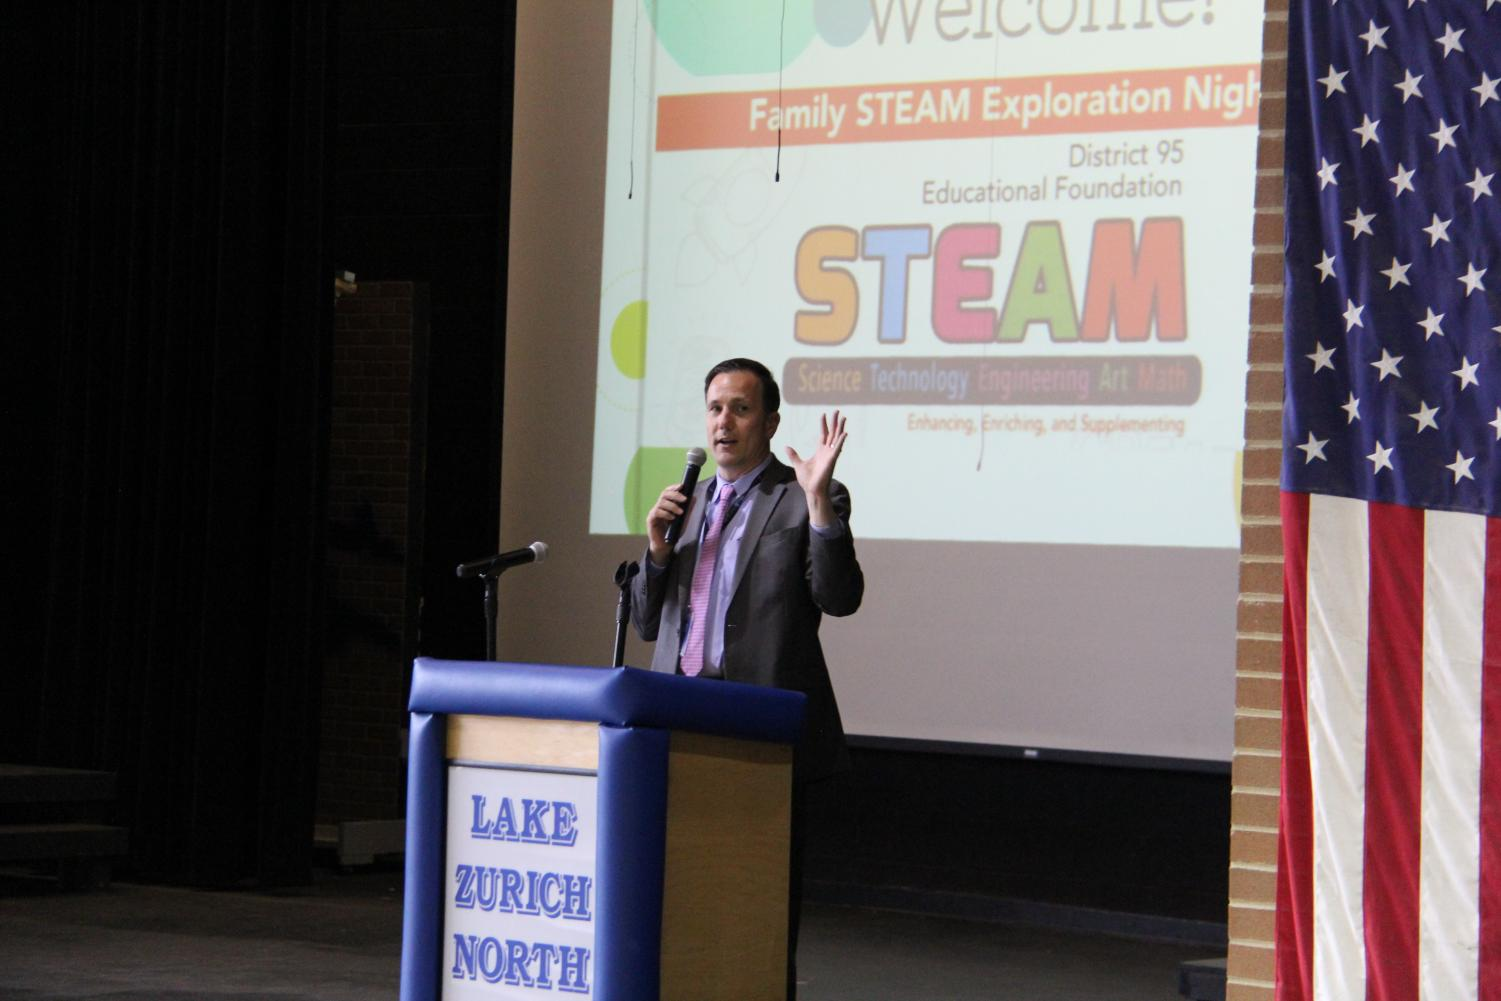 The+superintendent+educates+the+audience+about+the+STEAM+program.+Osburn+has+made+the+implementation+of+the+STEAM+program+a+district+wide+mission+in+the+time+he+has+been+in+Lake+Zurich.